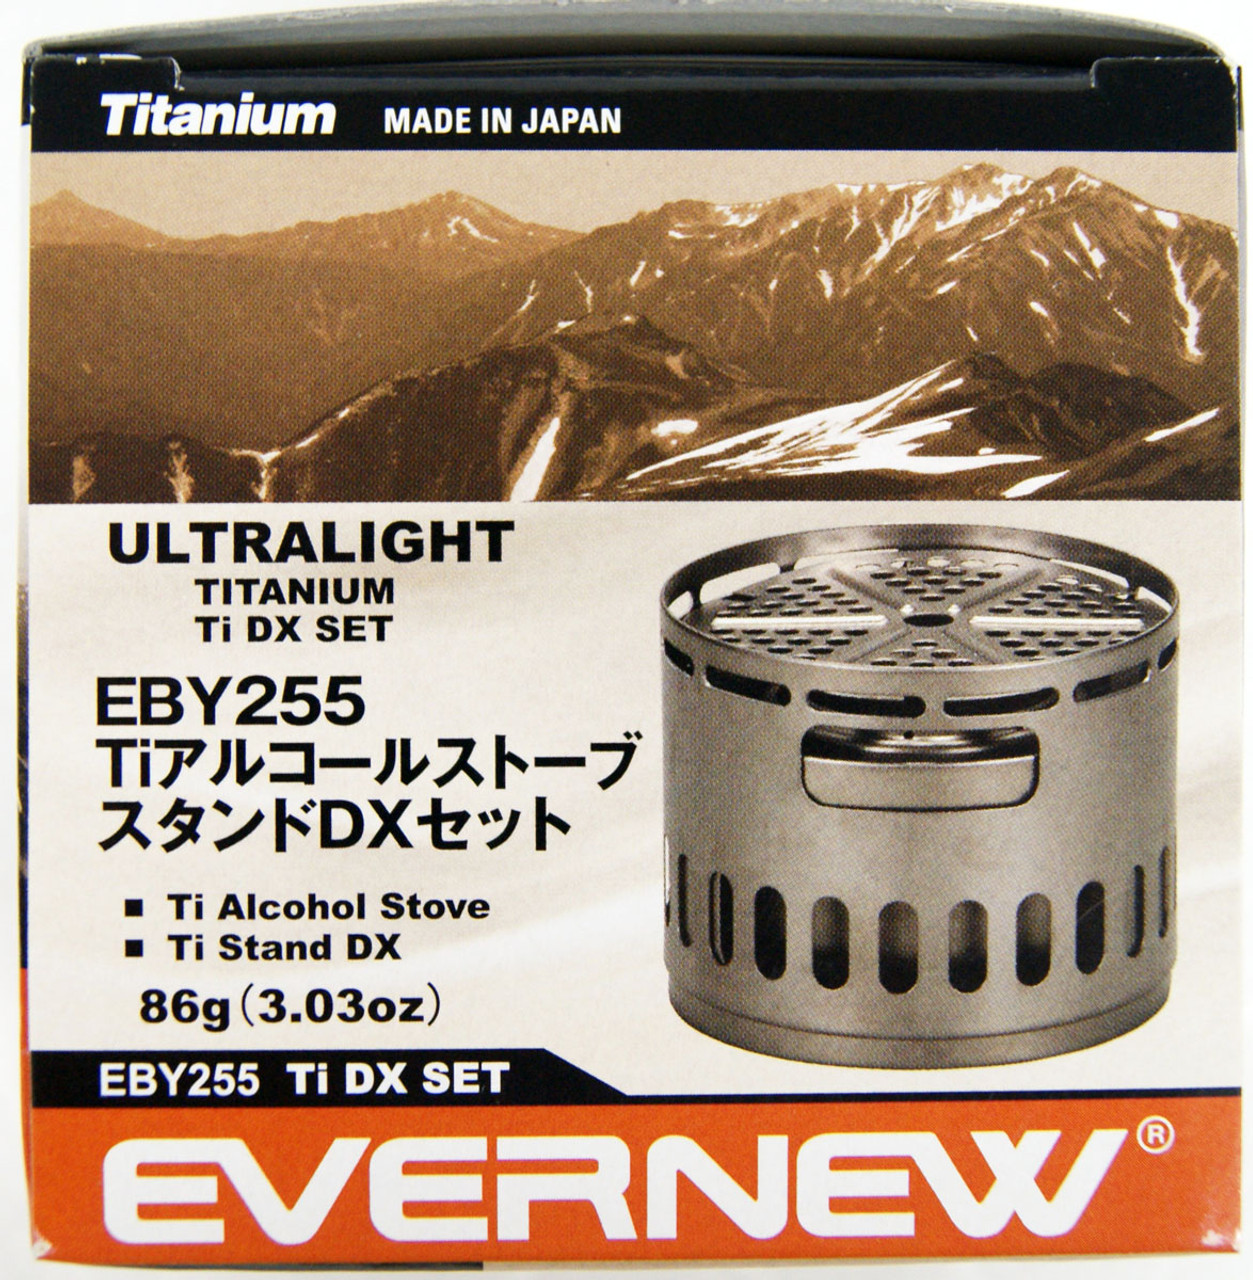 EVERNEW EBY255 Ti Alcohol Stove Stand DX Set Titanium?w// Tracking Number